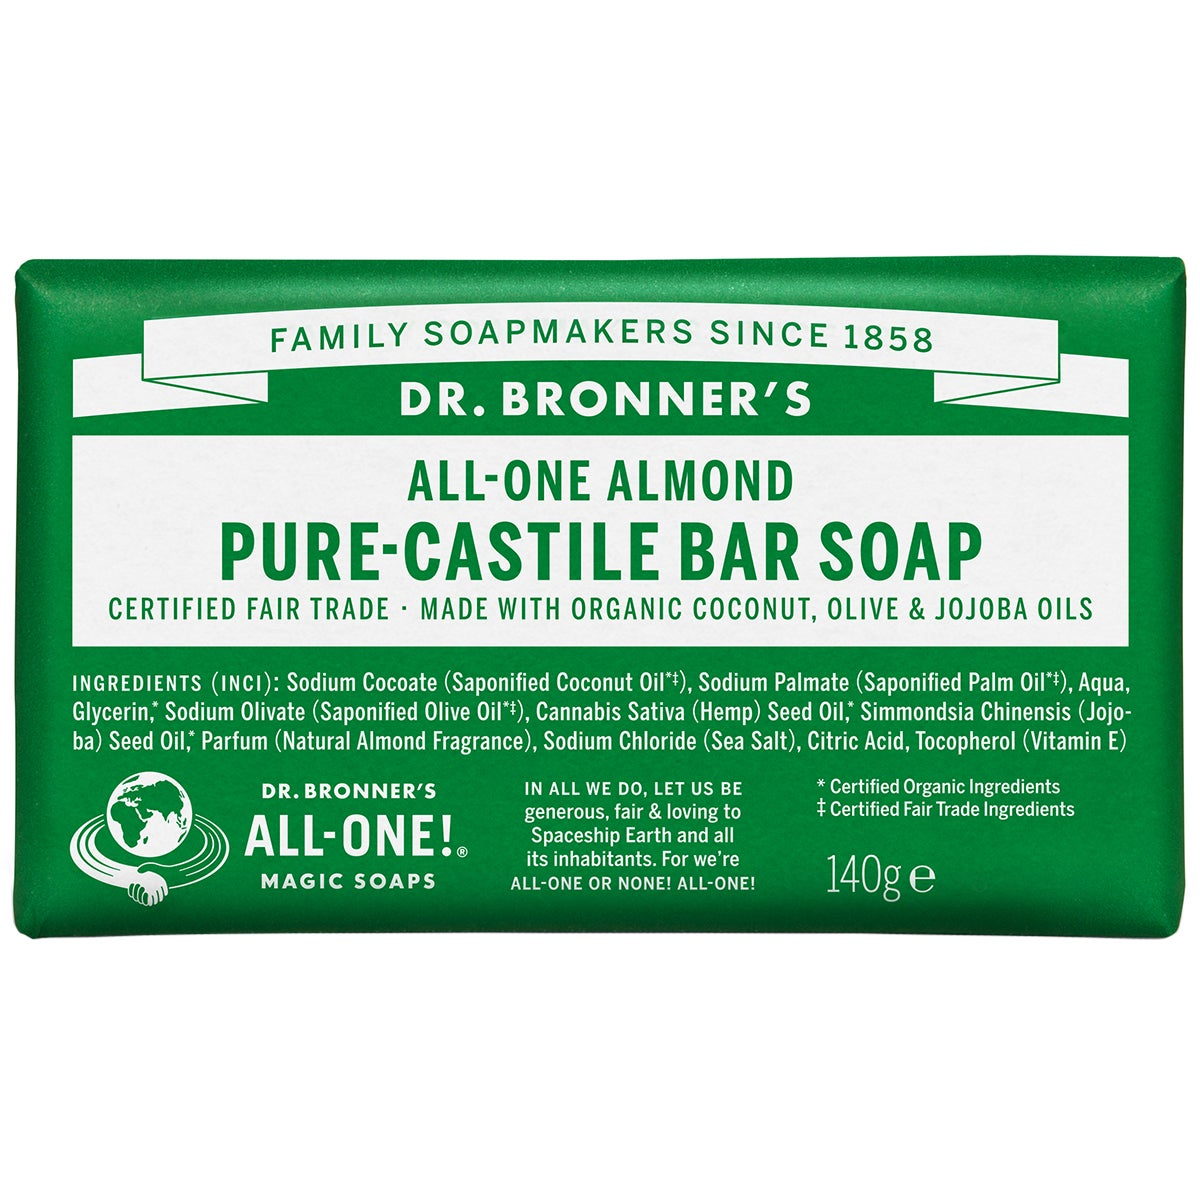 Dr. Bronner's Magic Soaps All-One Hemp Almond